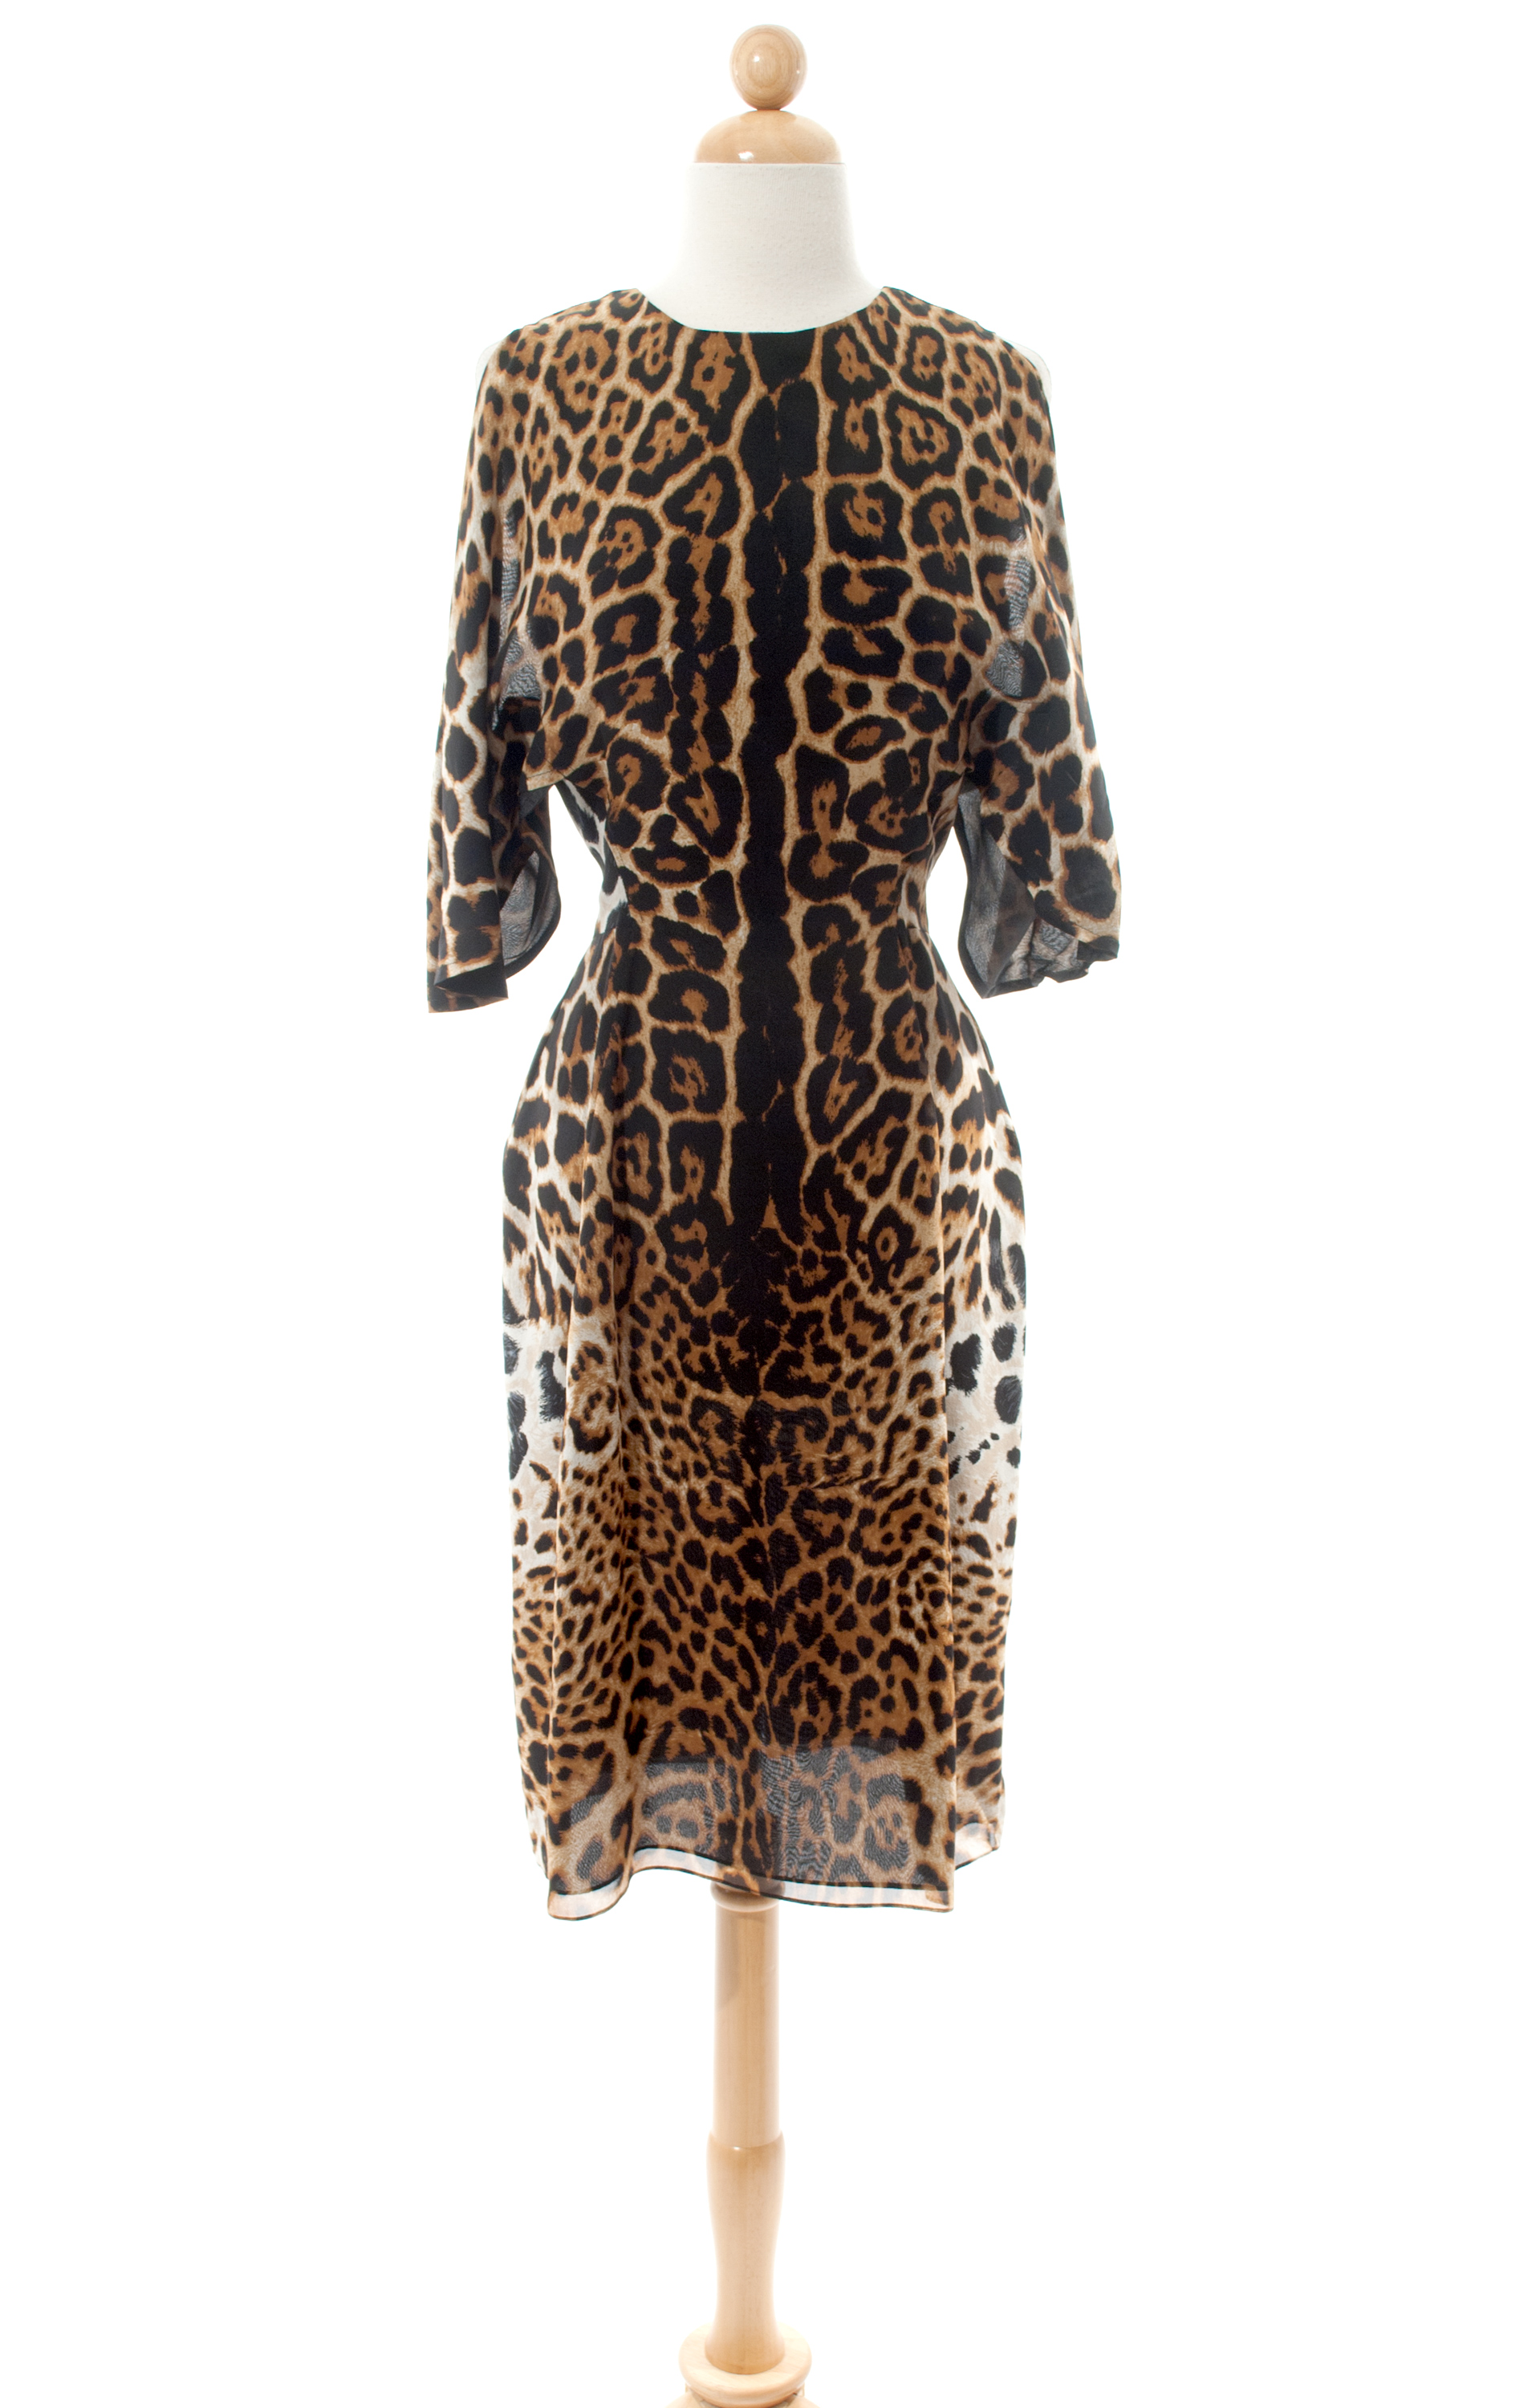 Yves Saint Laurent—Leopard Print Dress--$800